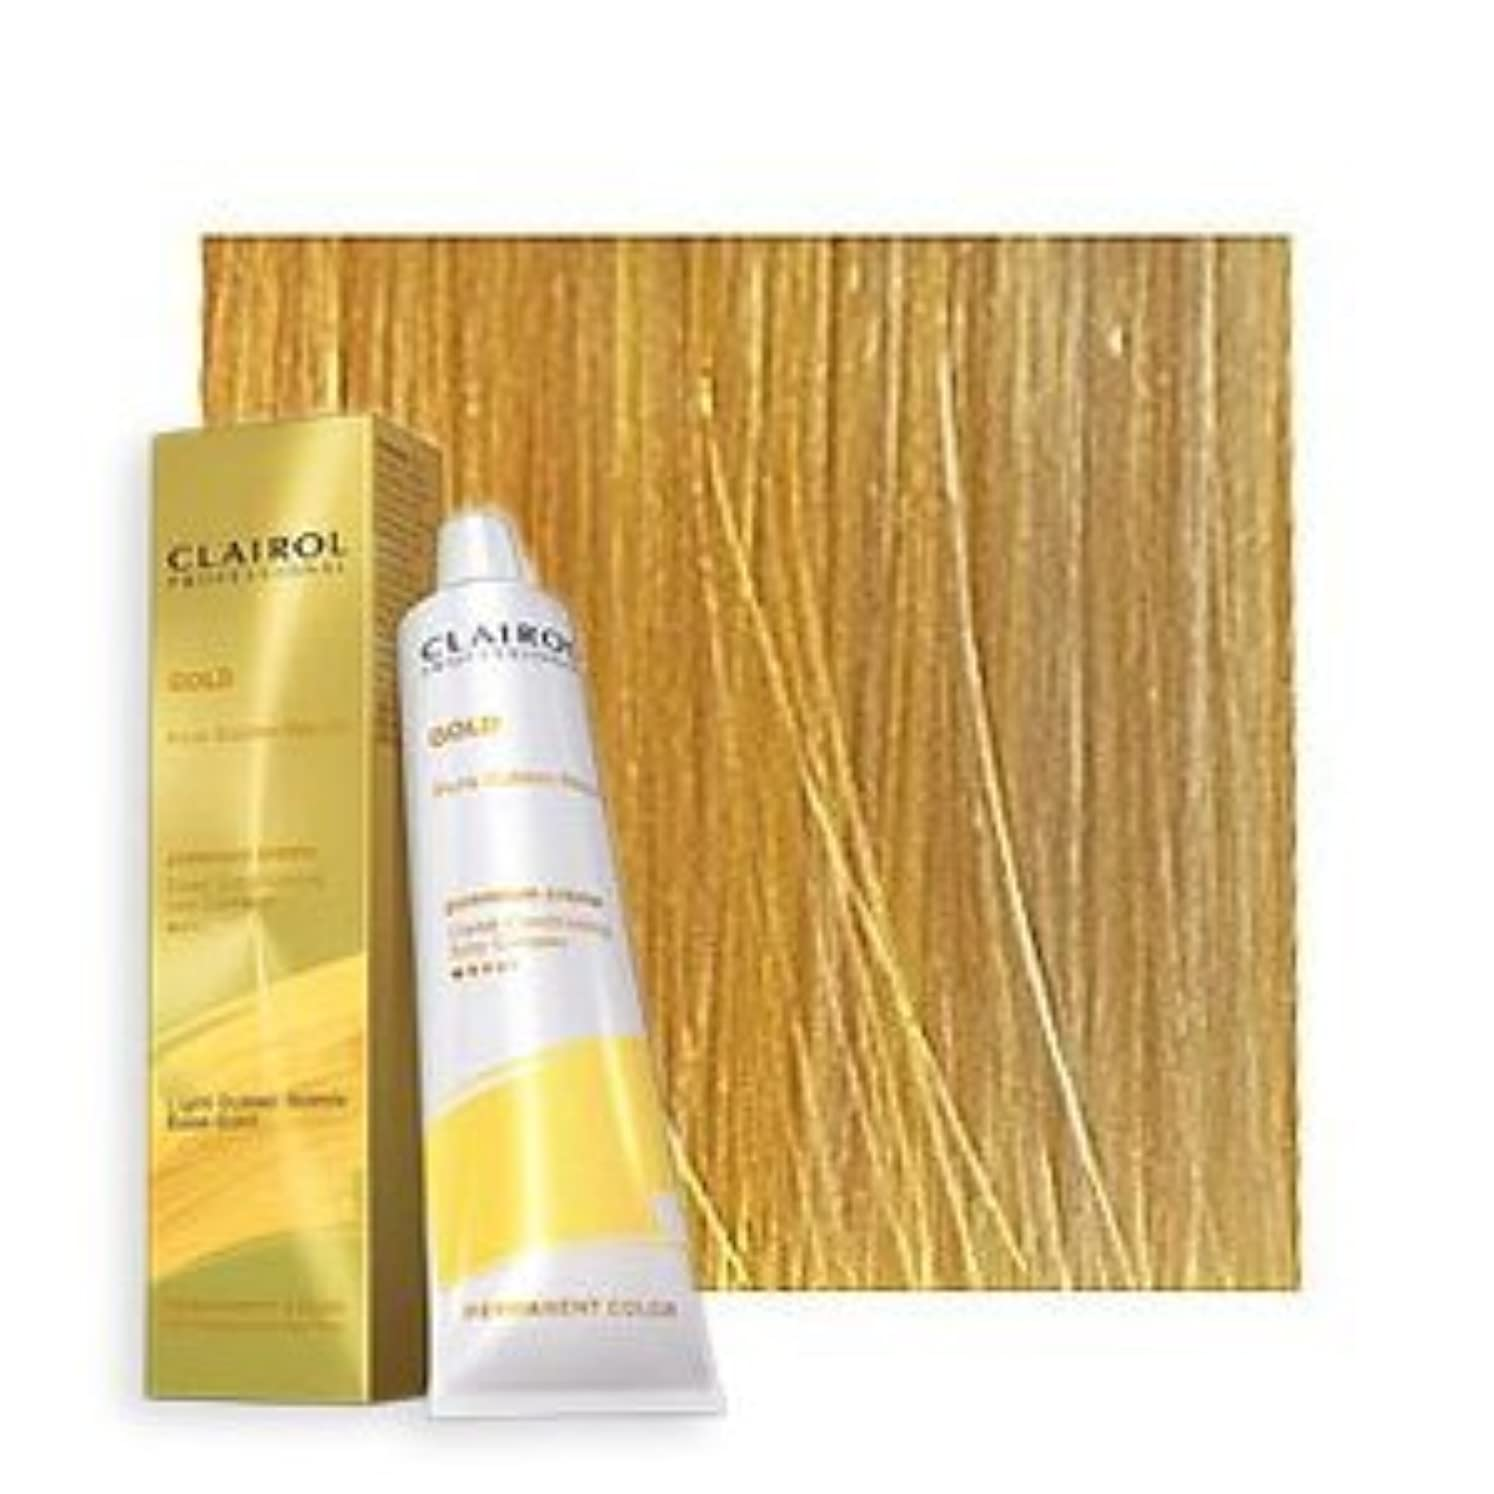 韻魂レイアウトClairol Professional - SOY4PLEX - Lightest Golden Blonde 10G - 2 oz / 57 g